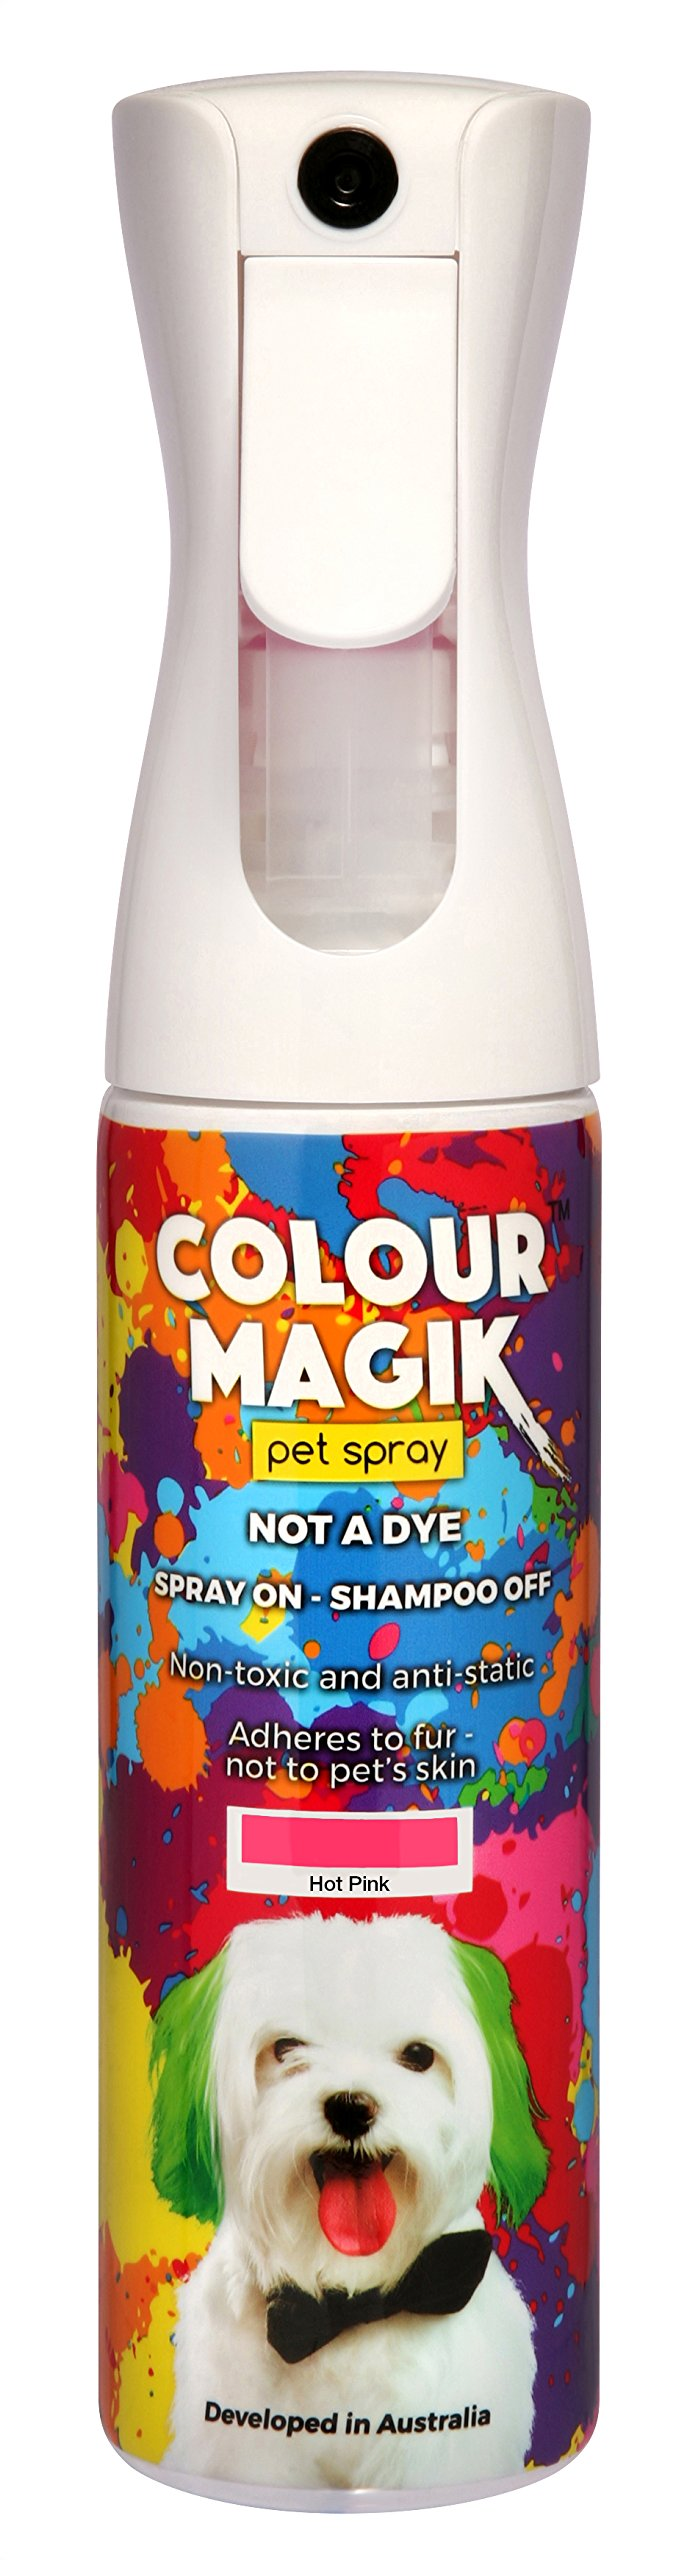 Petway Petcare Pet Paint Spray for Dogs 280 Ml - Color Safe Temporary Dog Hair Color Spray - Non Toxic, Eco Friendly, Propellant Free Dog Paint Hot Pink by PETWAY